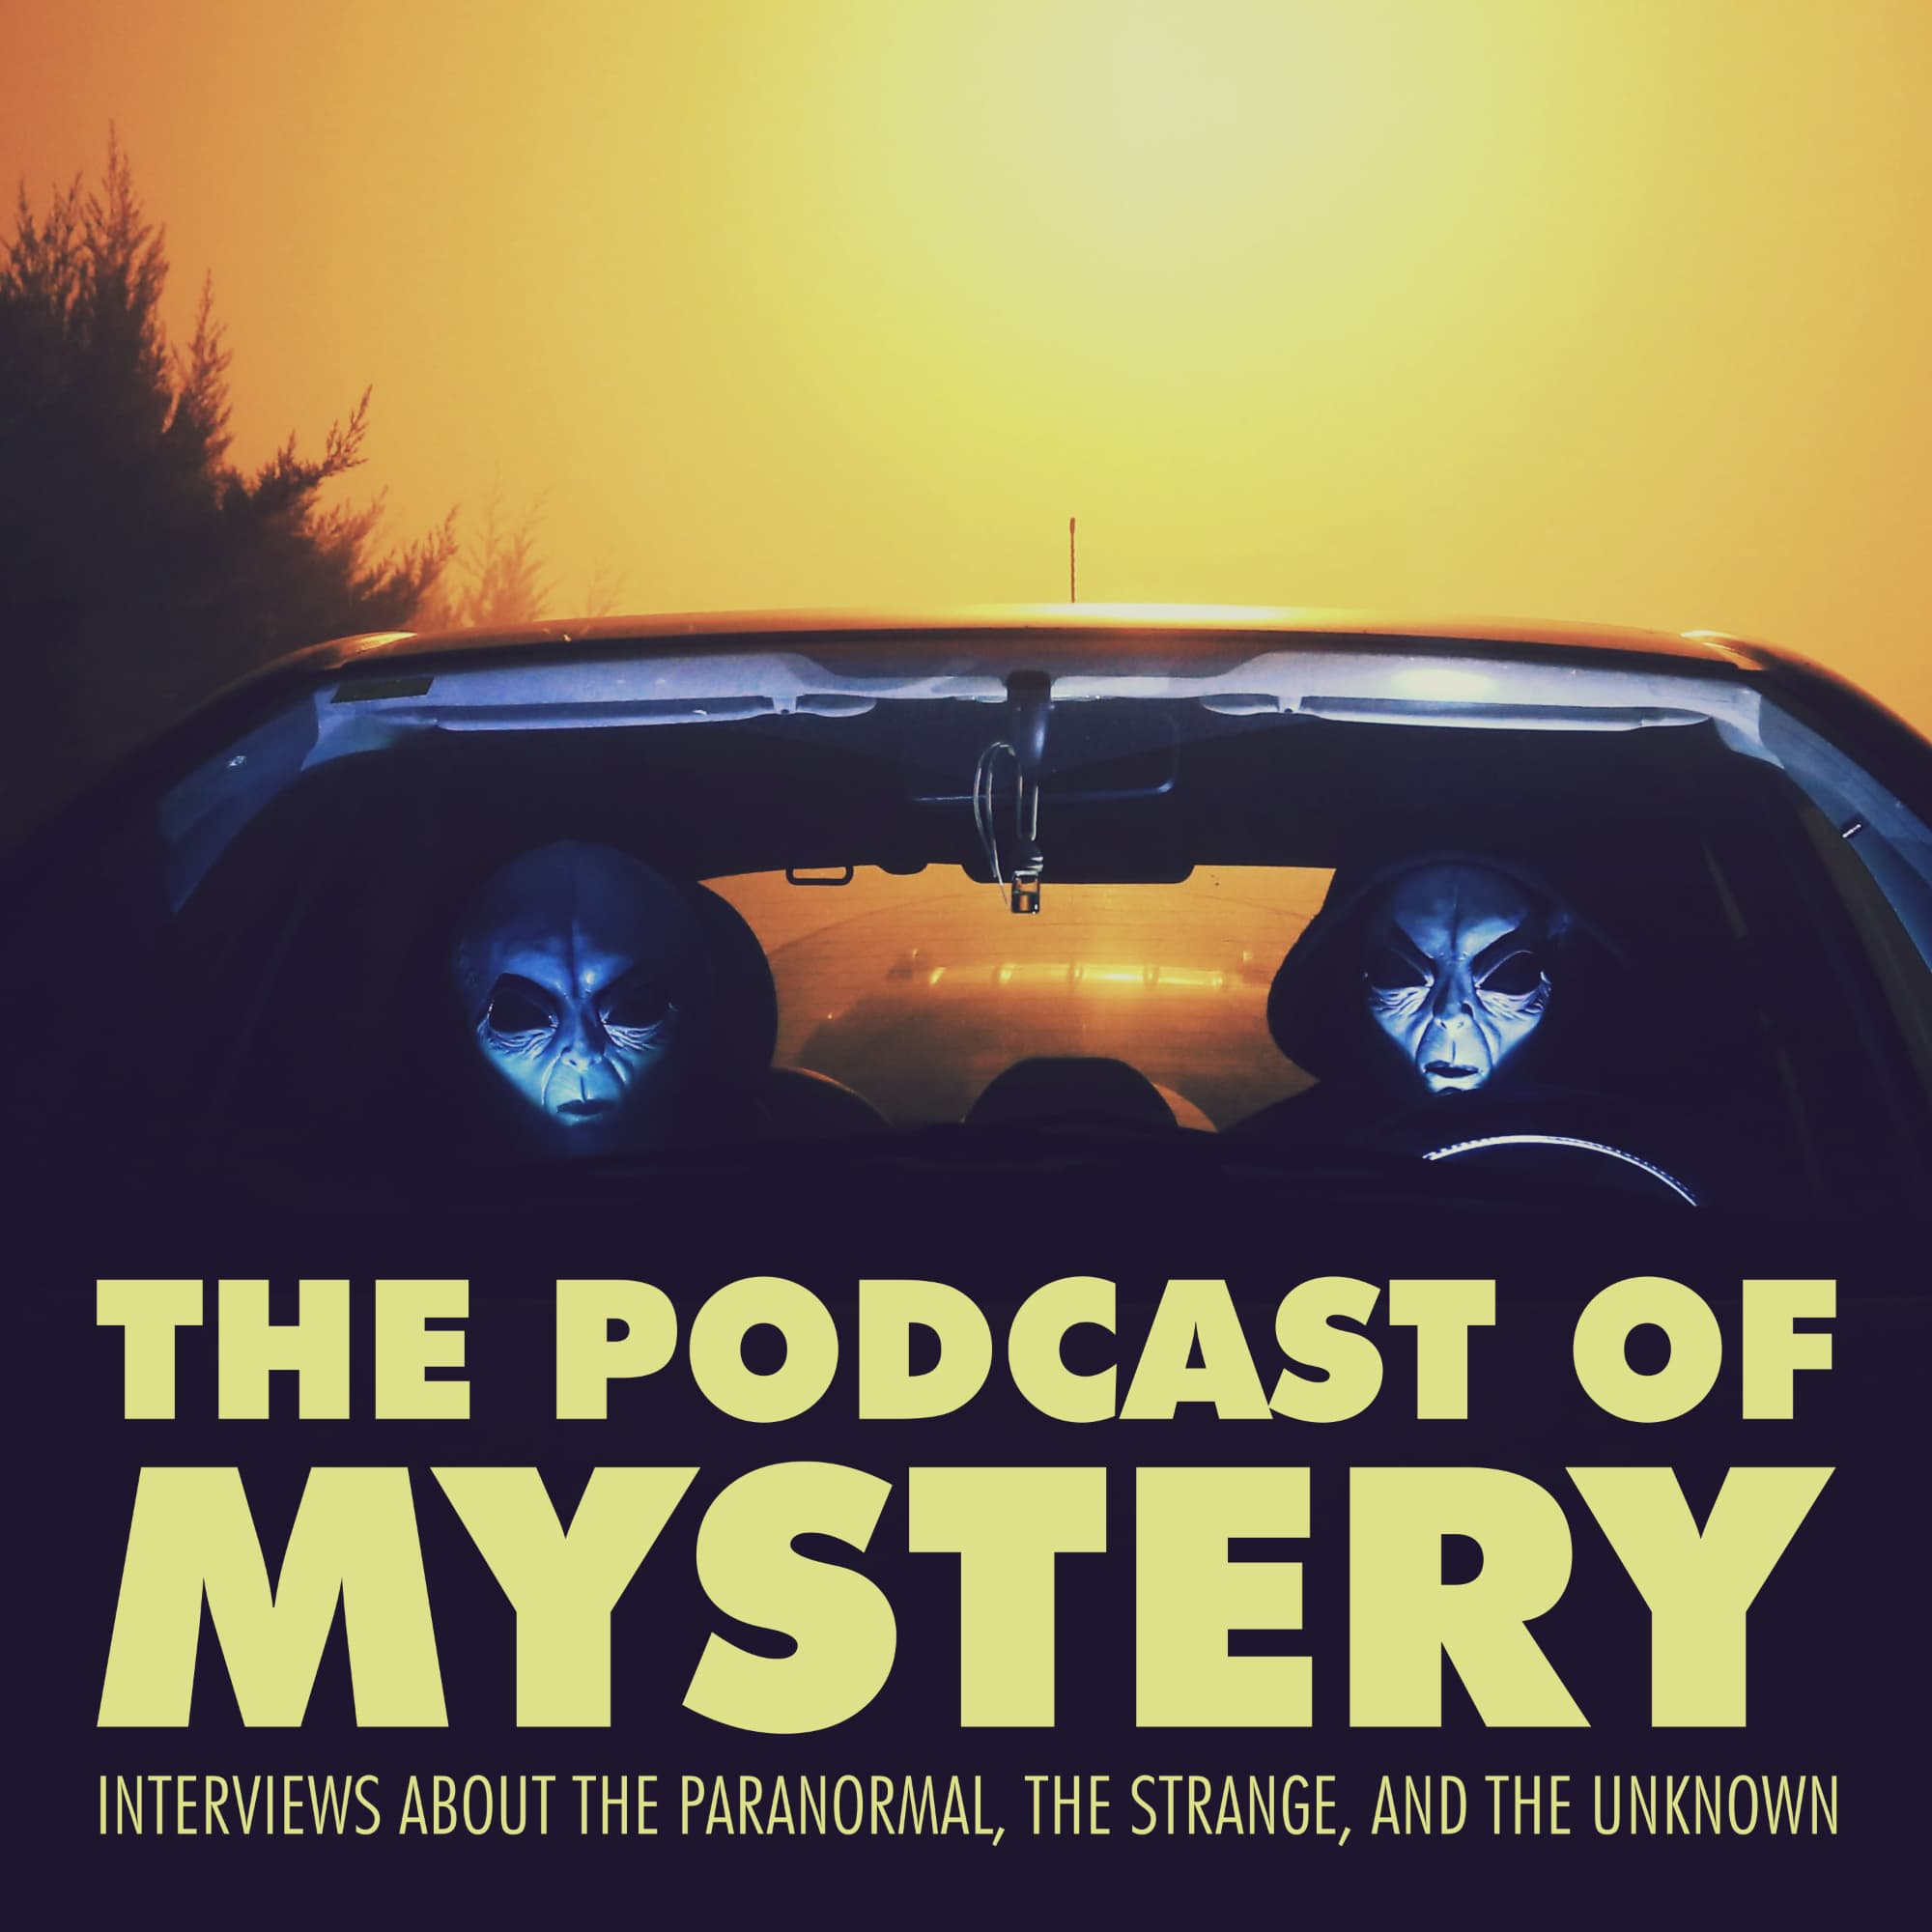 The Podcast of Mystery show art